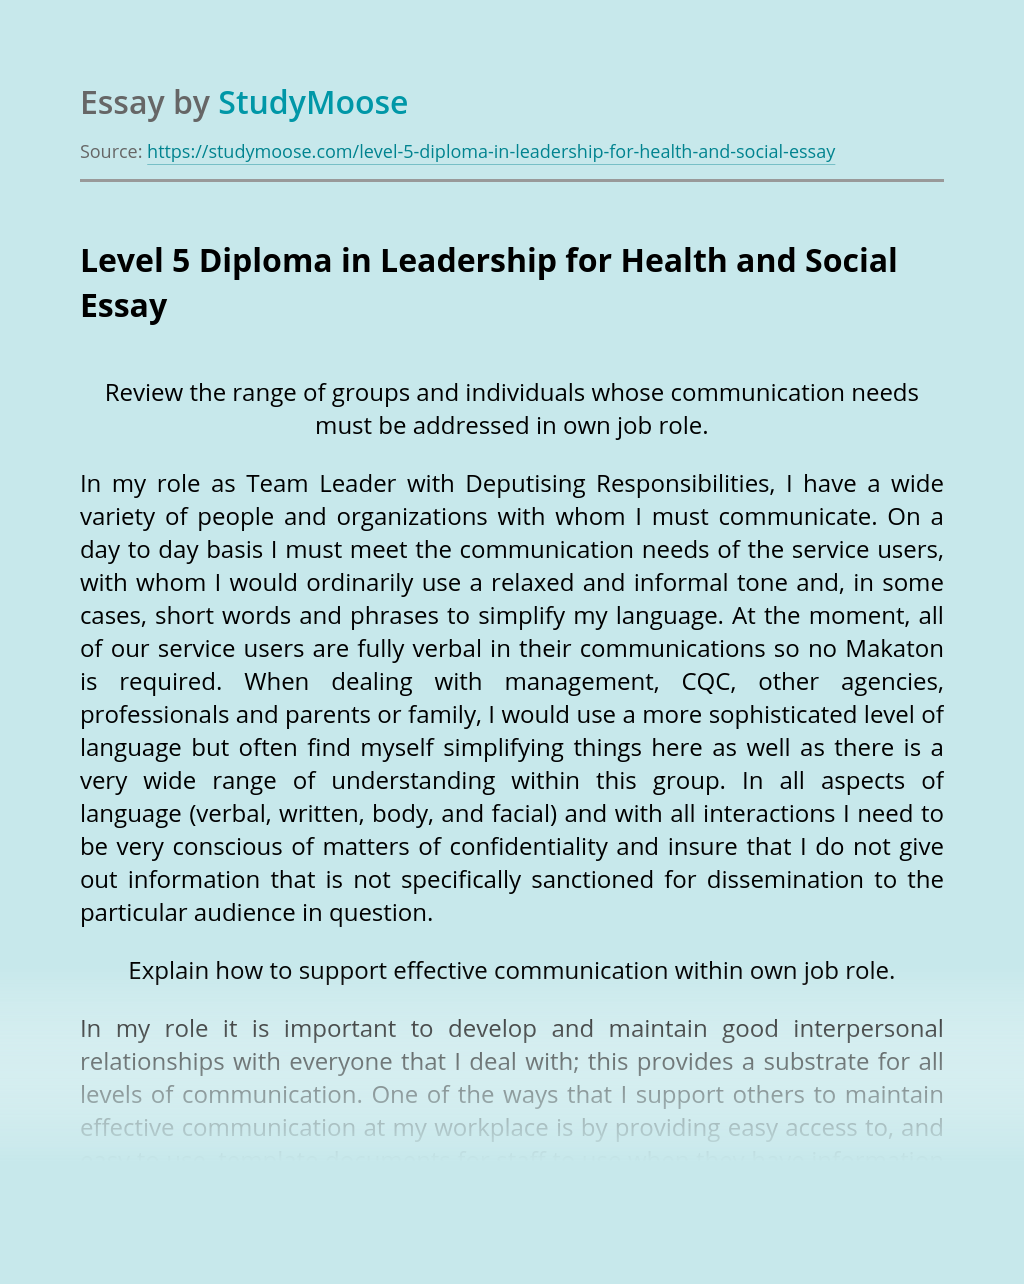 Level 5 Diploma in Leadership for Health and Social